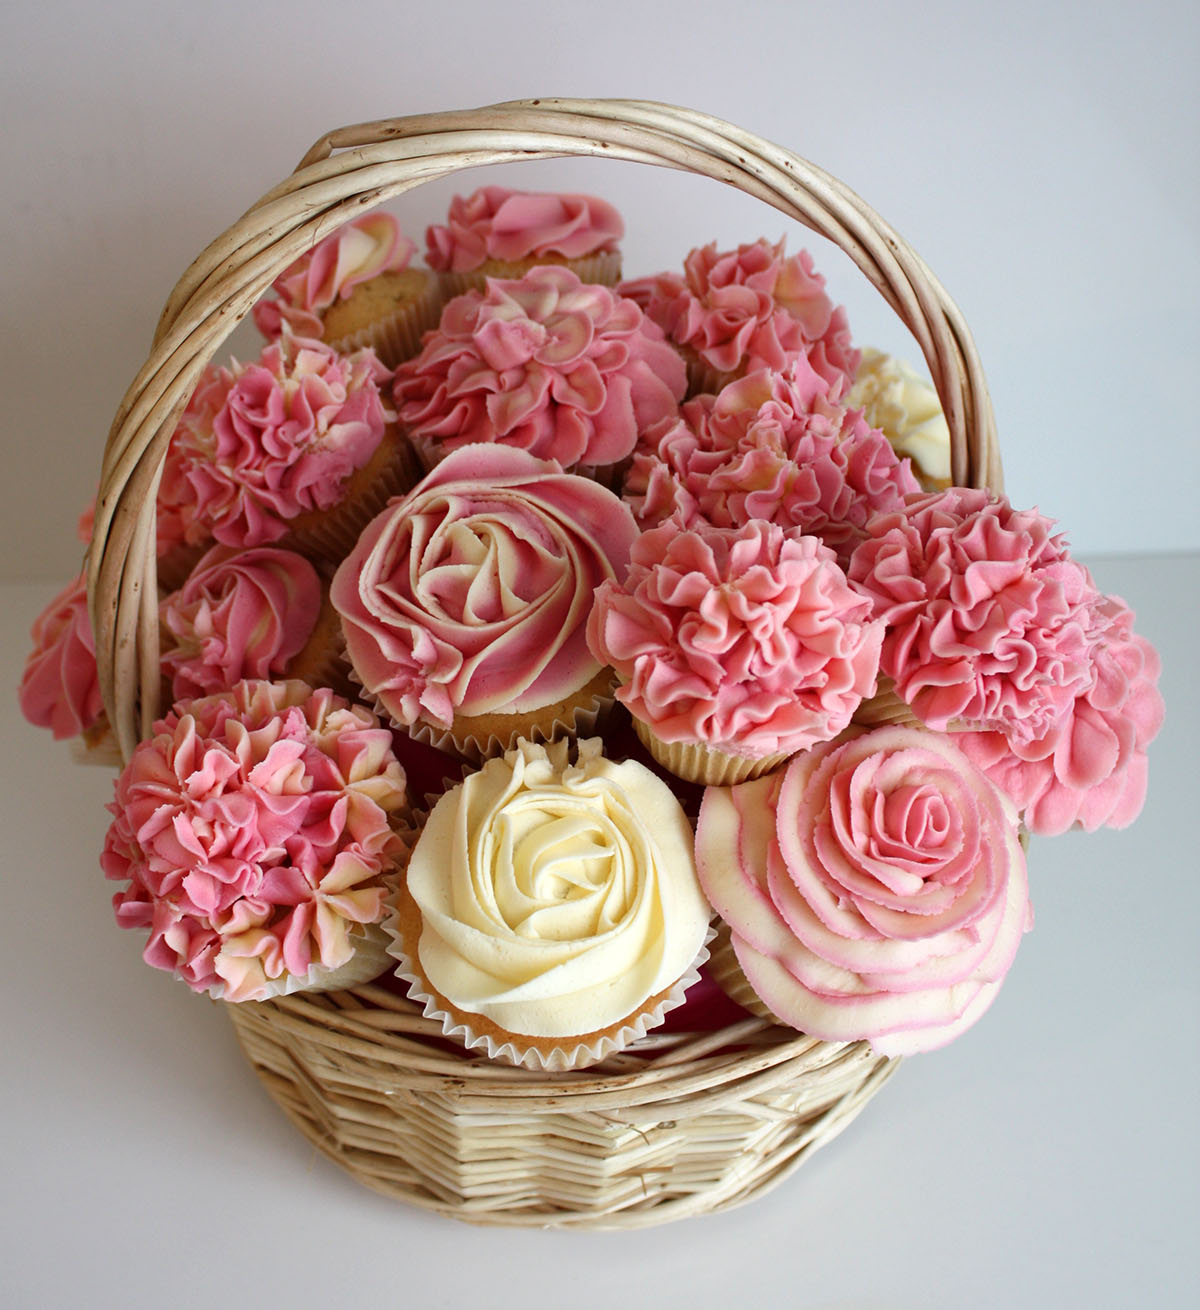 Cupcake bouquets and floral cupcakes heaven is a cupcake st img6074 izmirmasajfo